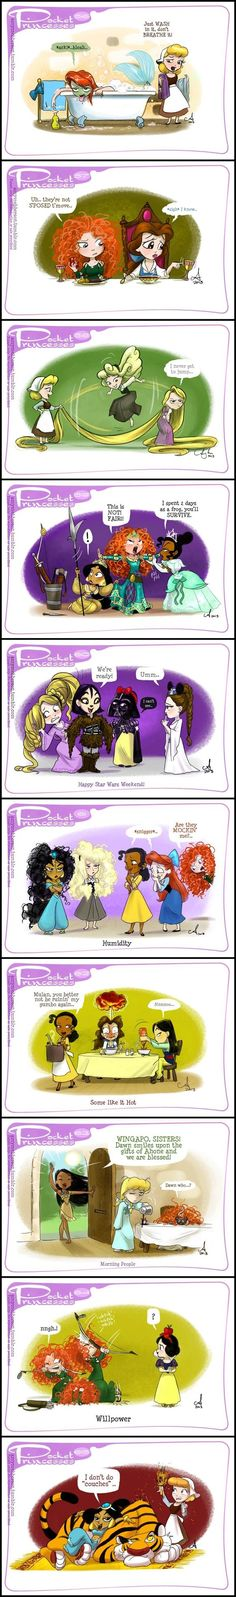 Pocket Princesses (Part 6) by Amy Mebberson: